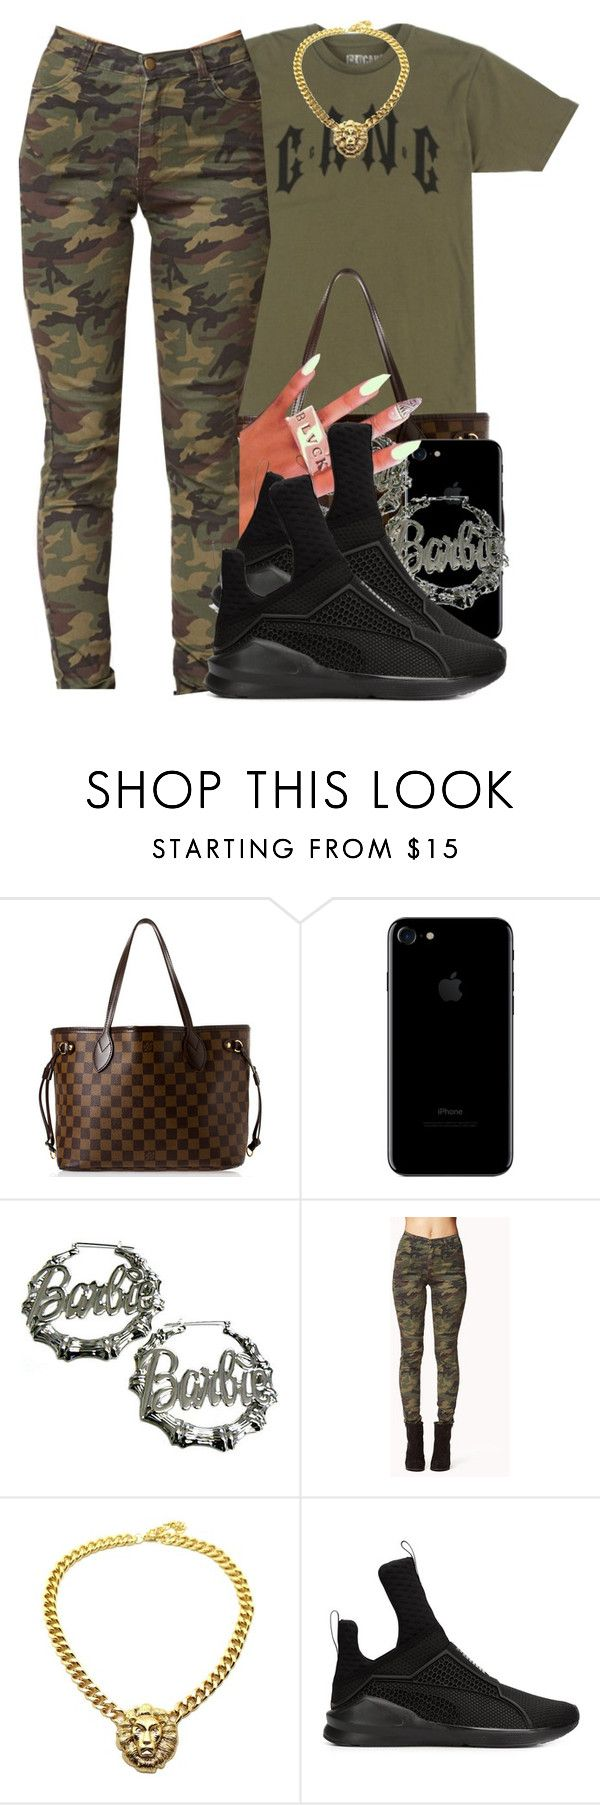 """""""G A N G"""" by polyvoreitems5 ❤ liked on Polyvore featuring Louis Vuitton, Nicki Minaj, Forever 21 and Puma"""